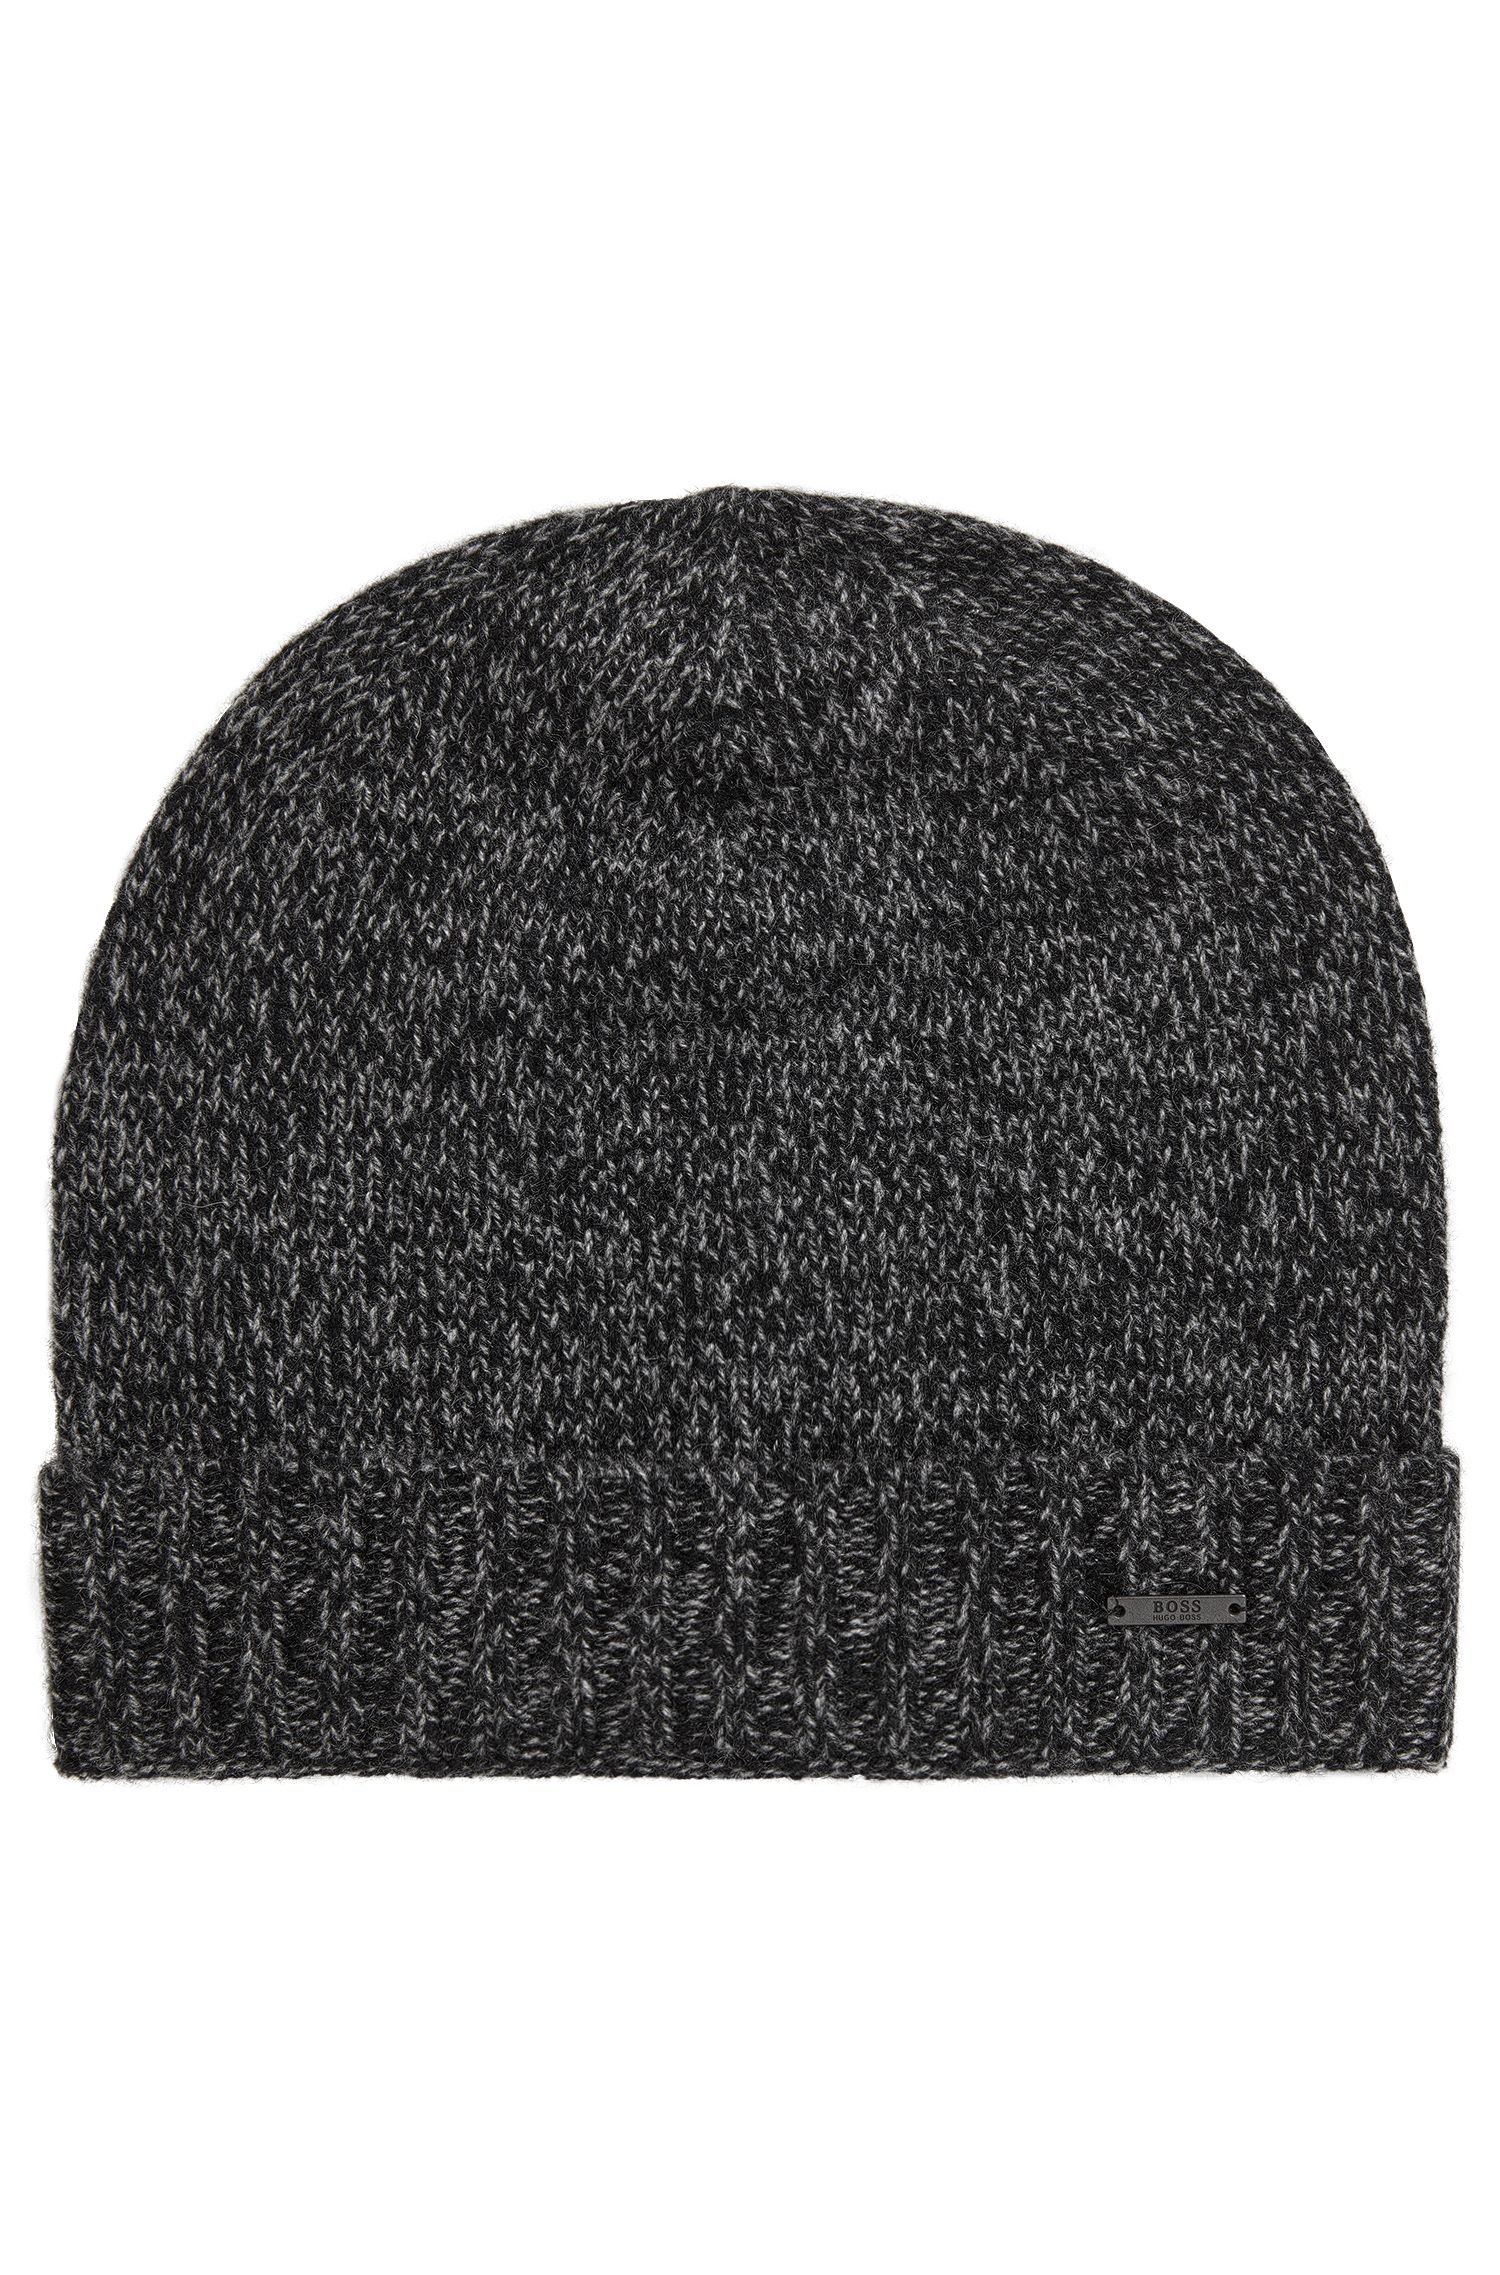 Beanie hat in mouliné cashmere, Black